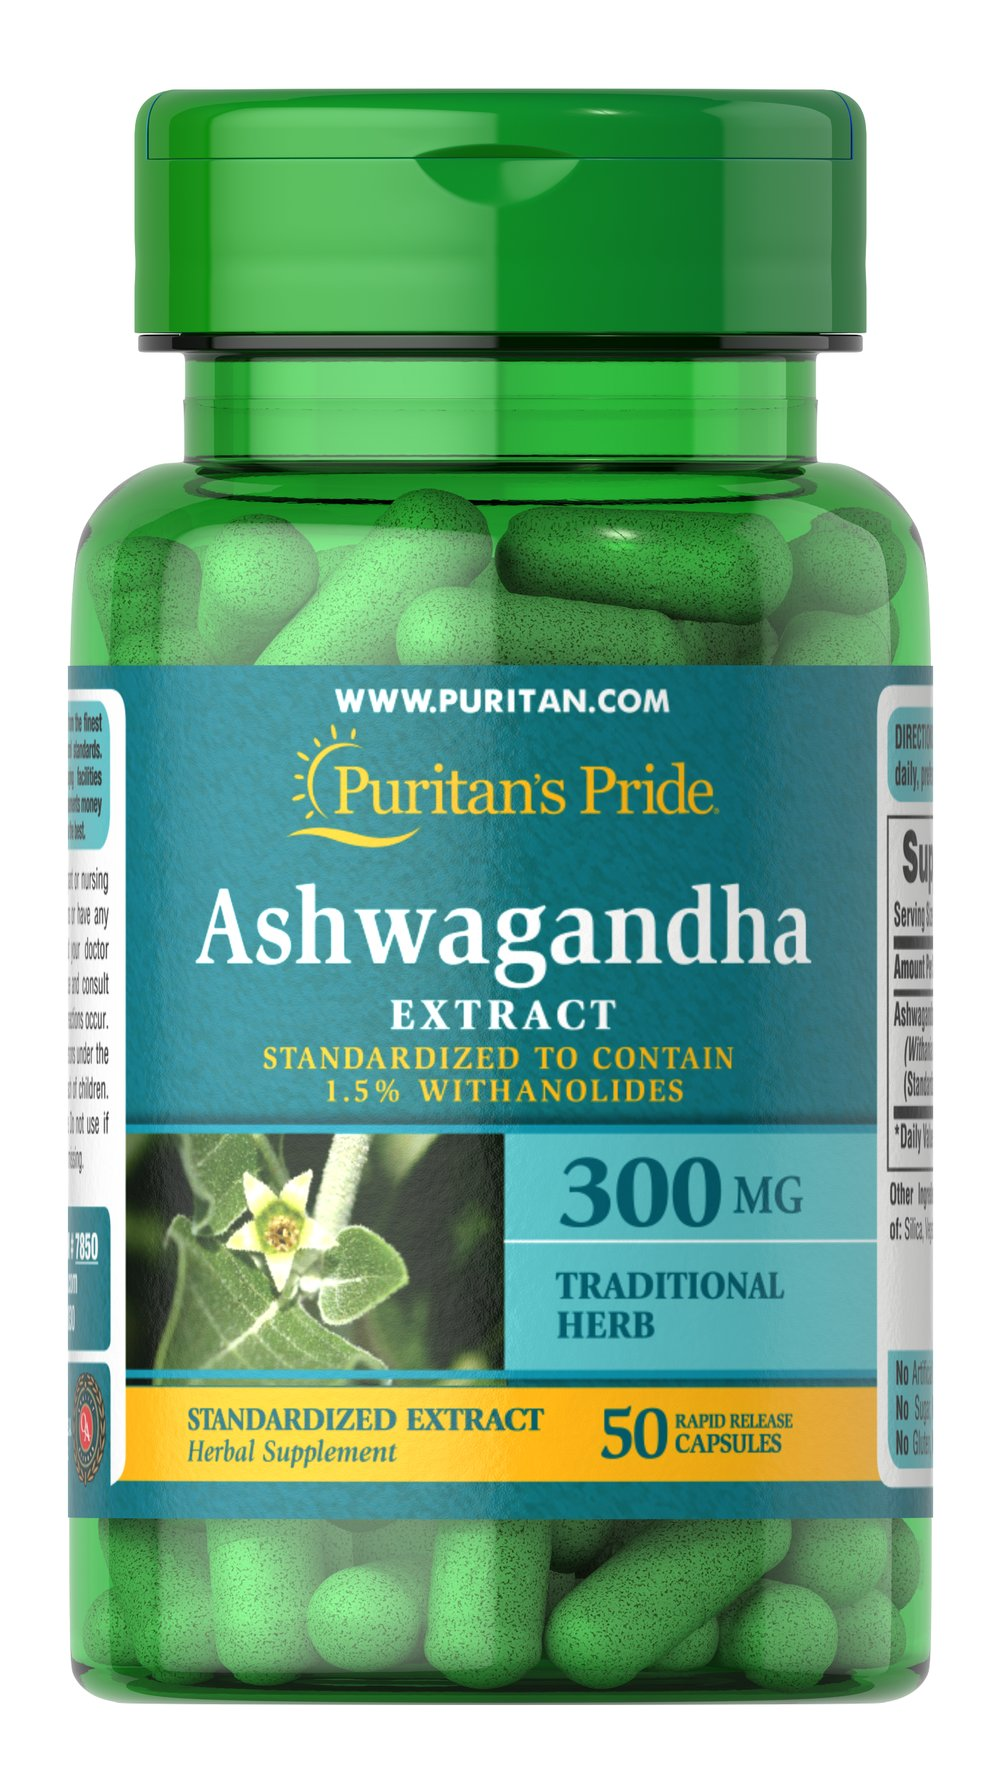 Ashwagandha Standardized Extract 300 mg  50 Capsules 300 mg $7.19